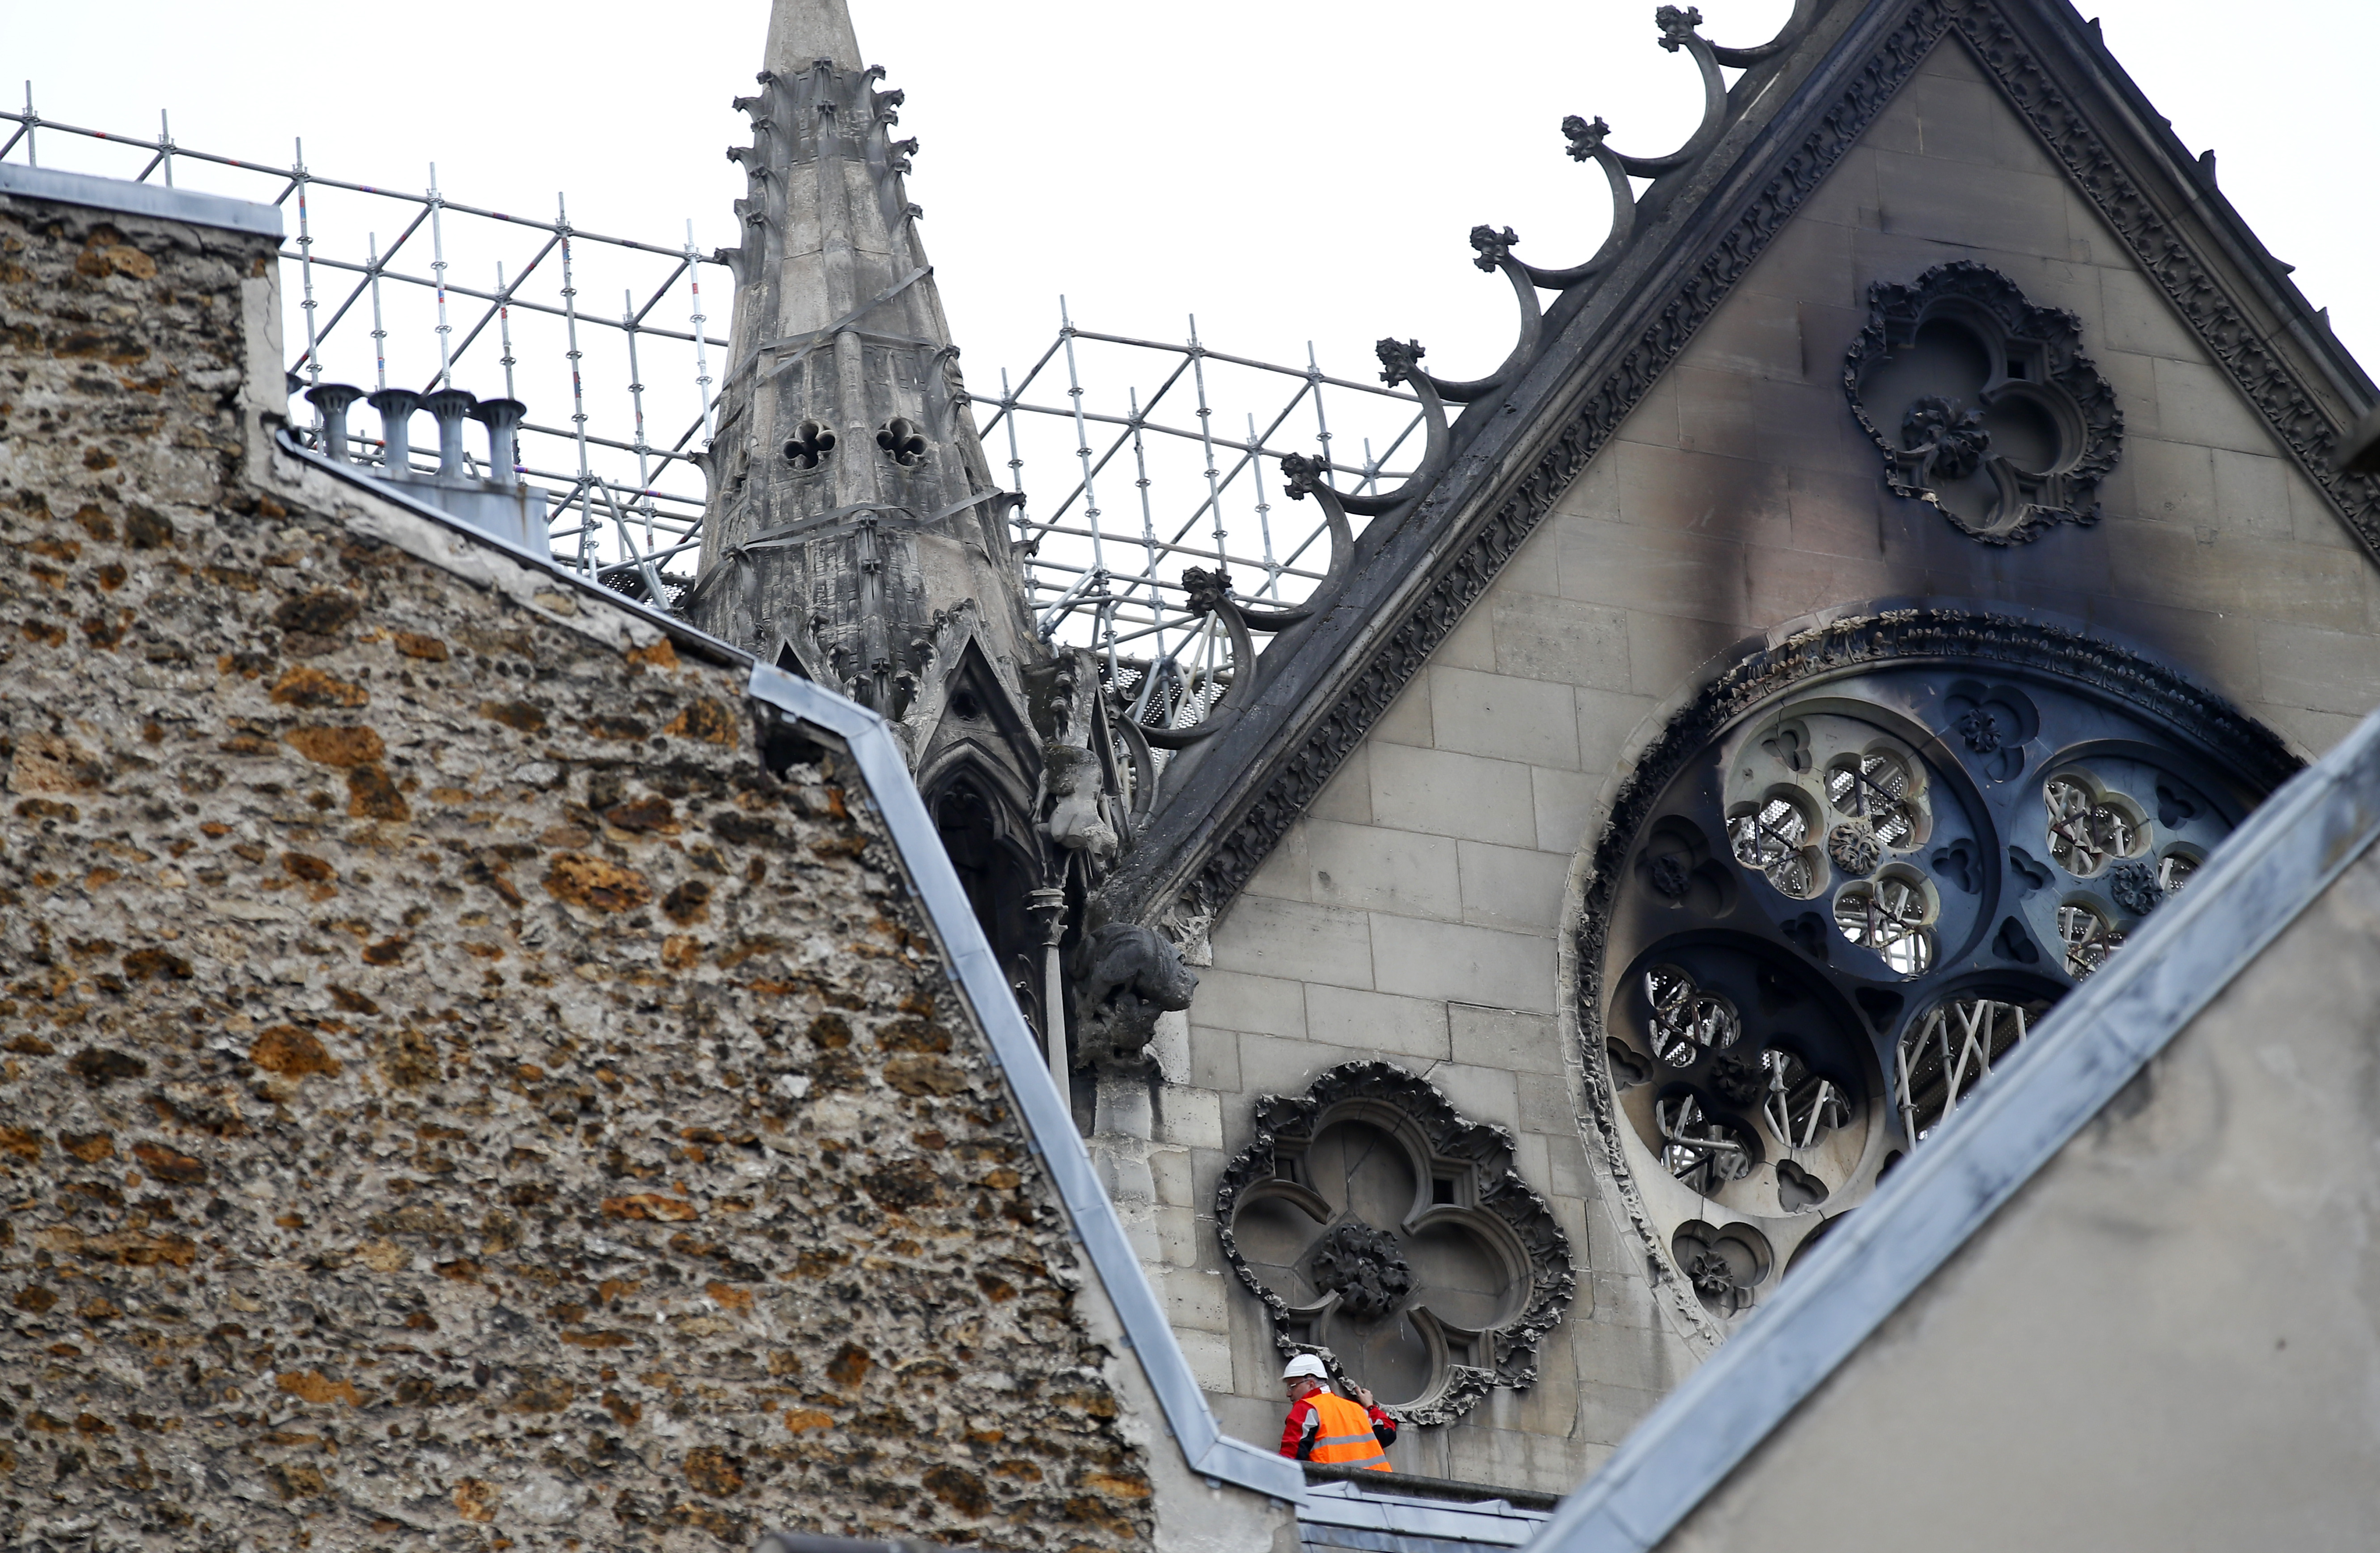 A man is pictured near chared glass windows of the Notre Dame cathedral Tuesday April 16, 2019 in Paris. Firefighters declared success Tuesday in a more than 12-hour battle to extinguish an inferno engulfing Paris' iconic Notre Dame cathedral that claimed its spire and roof, but spared its bell towers.